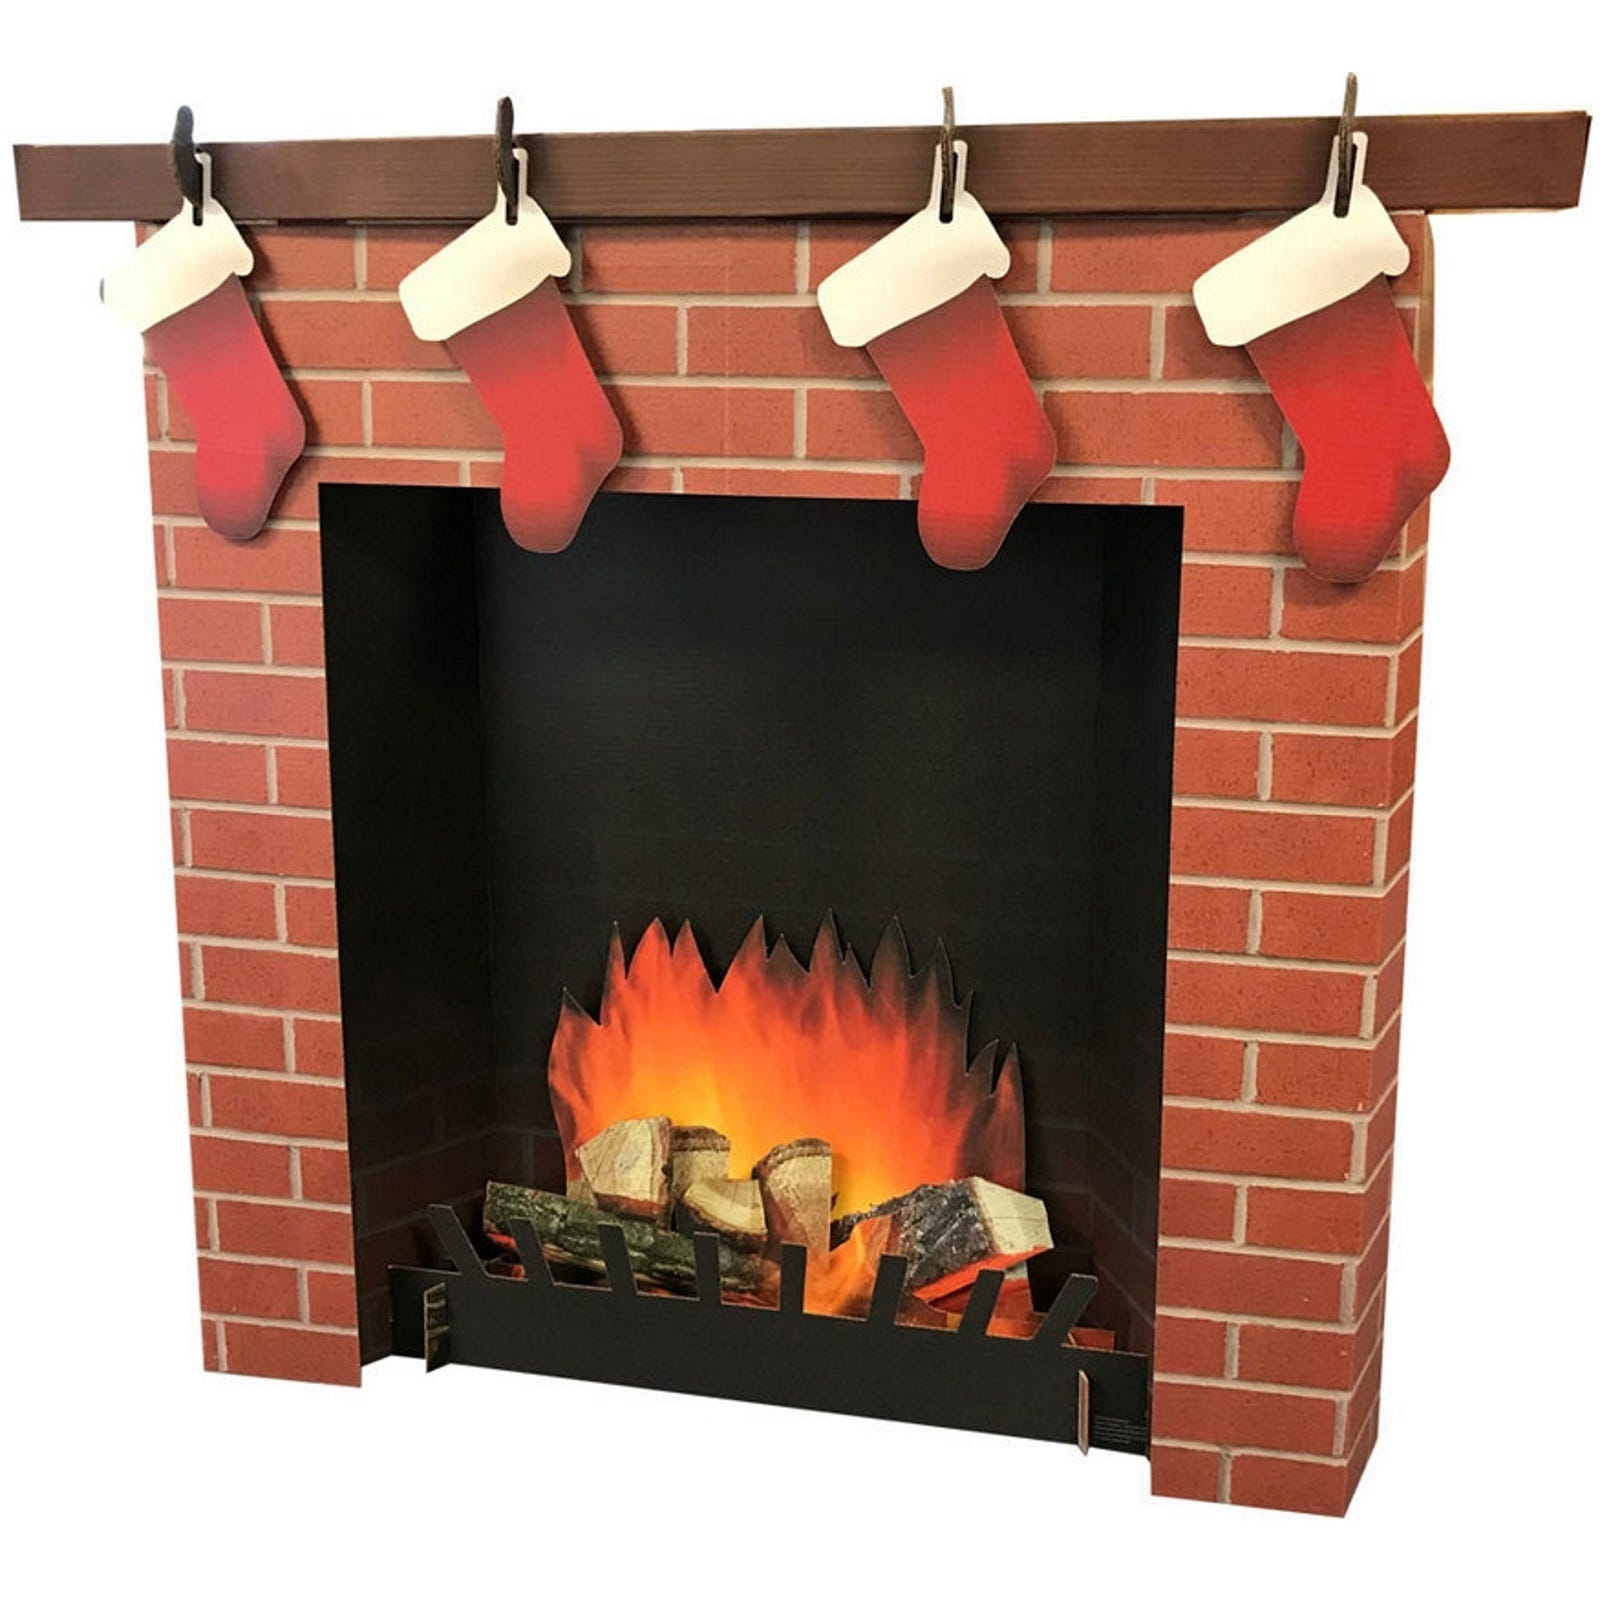 Cardboard Christmas Fireplace.Details About 3d Christmas Fireplace With Stockings Stand Up Cardboard Decoration Photo Prop